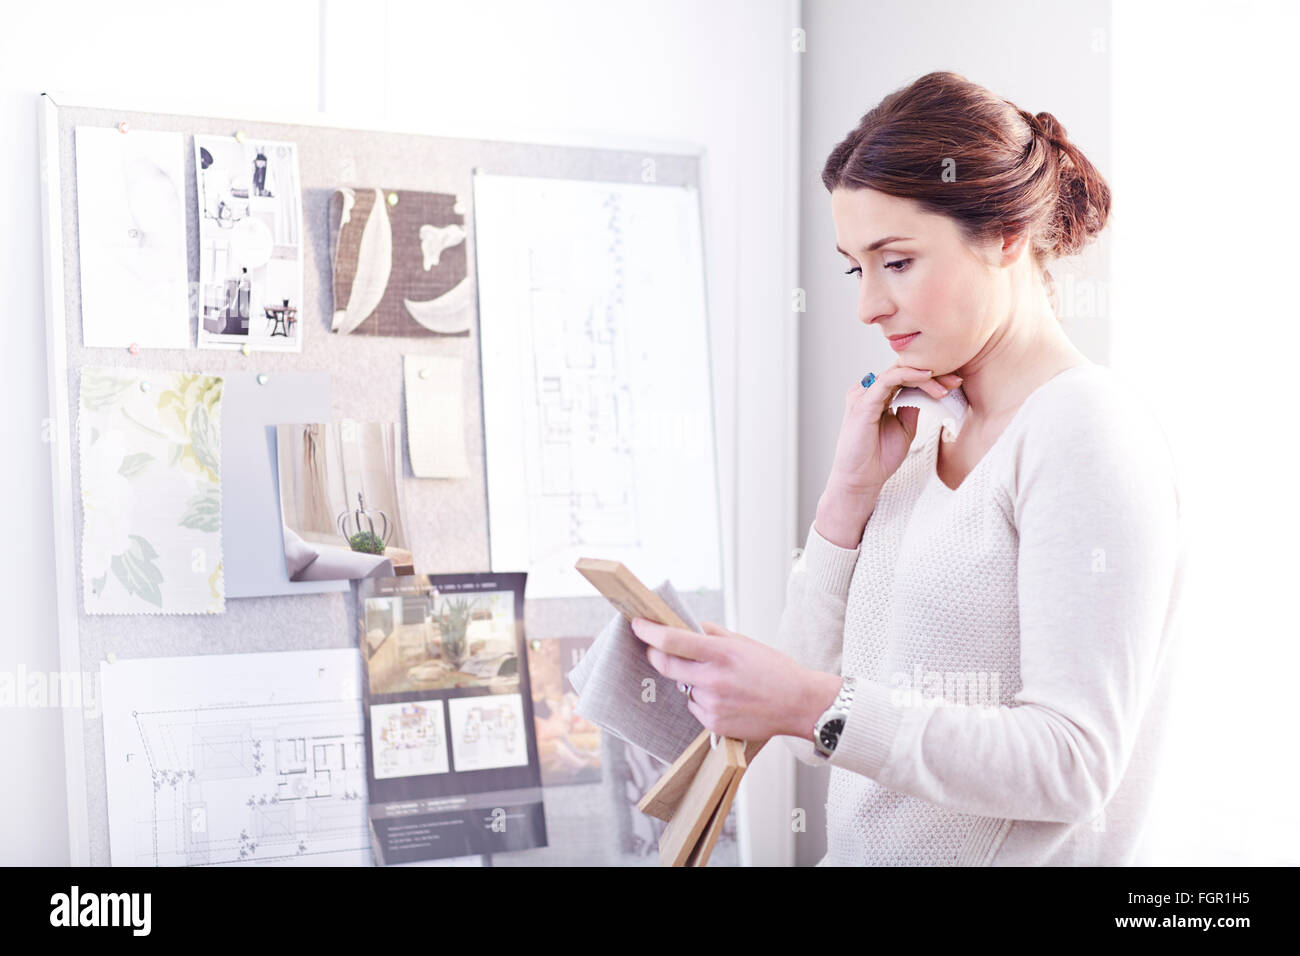 Interior designer viewing swatches in office - Stock Image